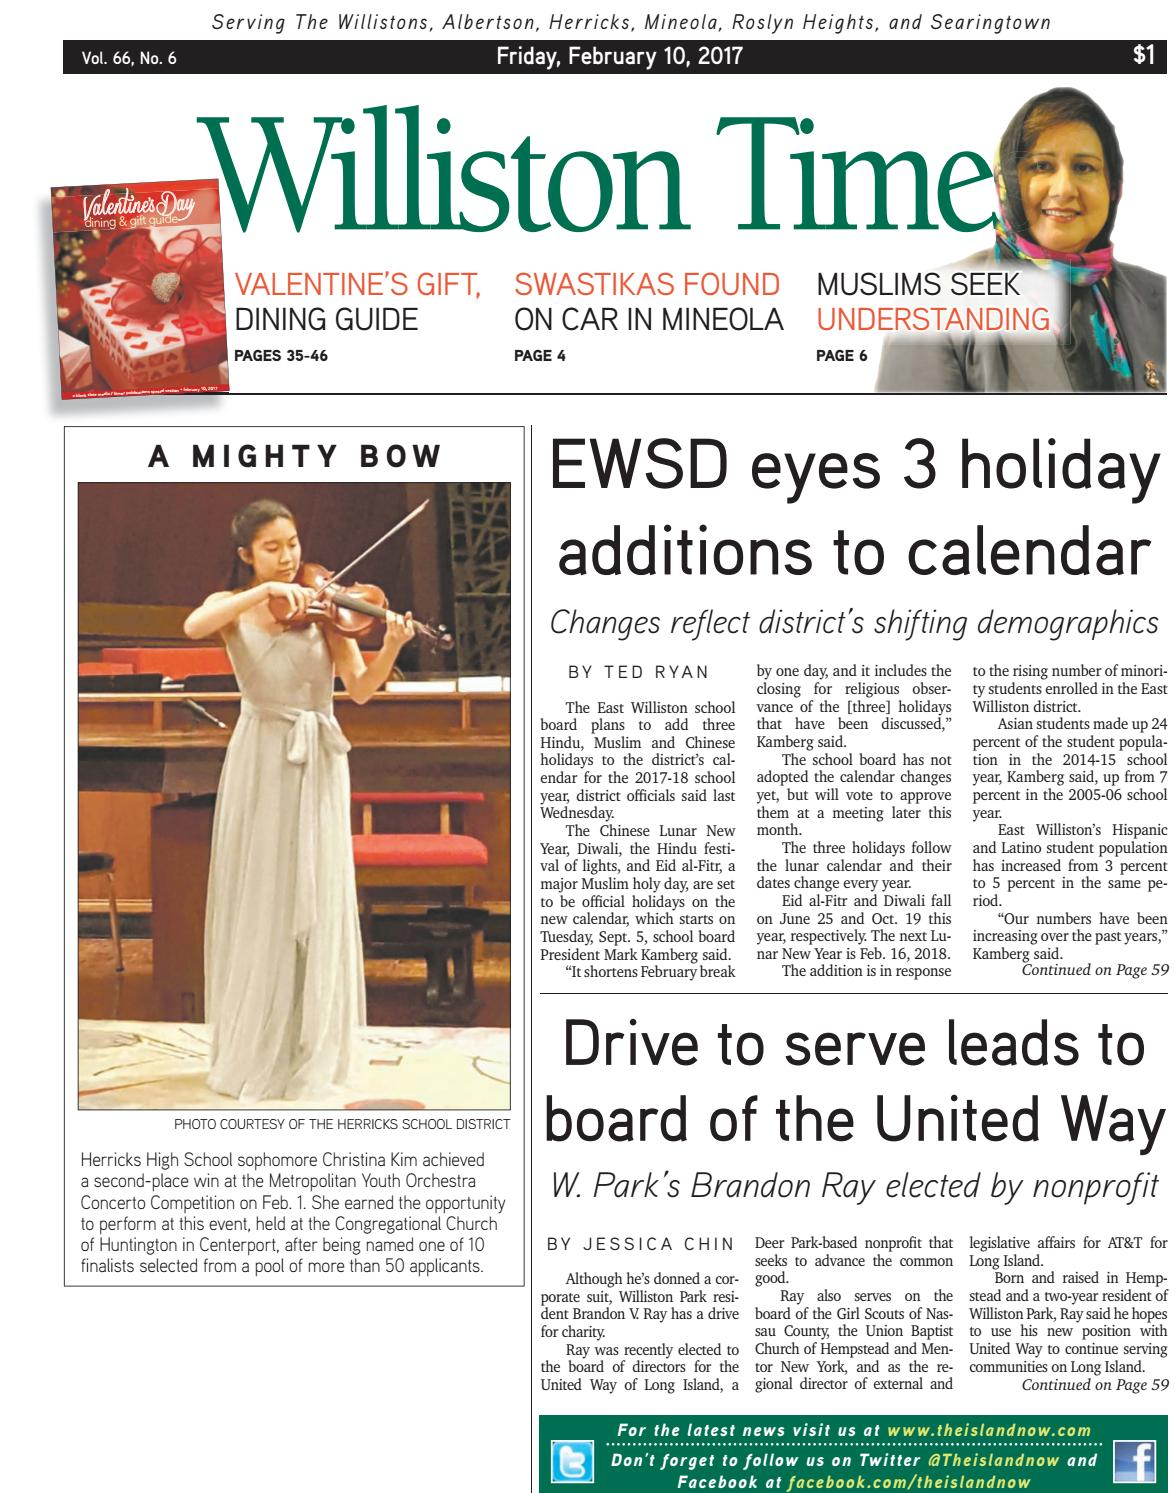 williston muslim The east williston and herricks districts will be closed to students only on that day last may, the jericho school district ok'd the eid holidays, effective for the 2018-19 school year before that approval, district officials had remarked on the difficulty of such a decision and vowed further study.